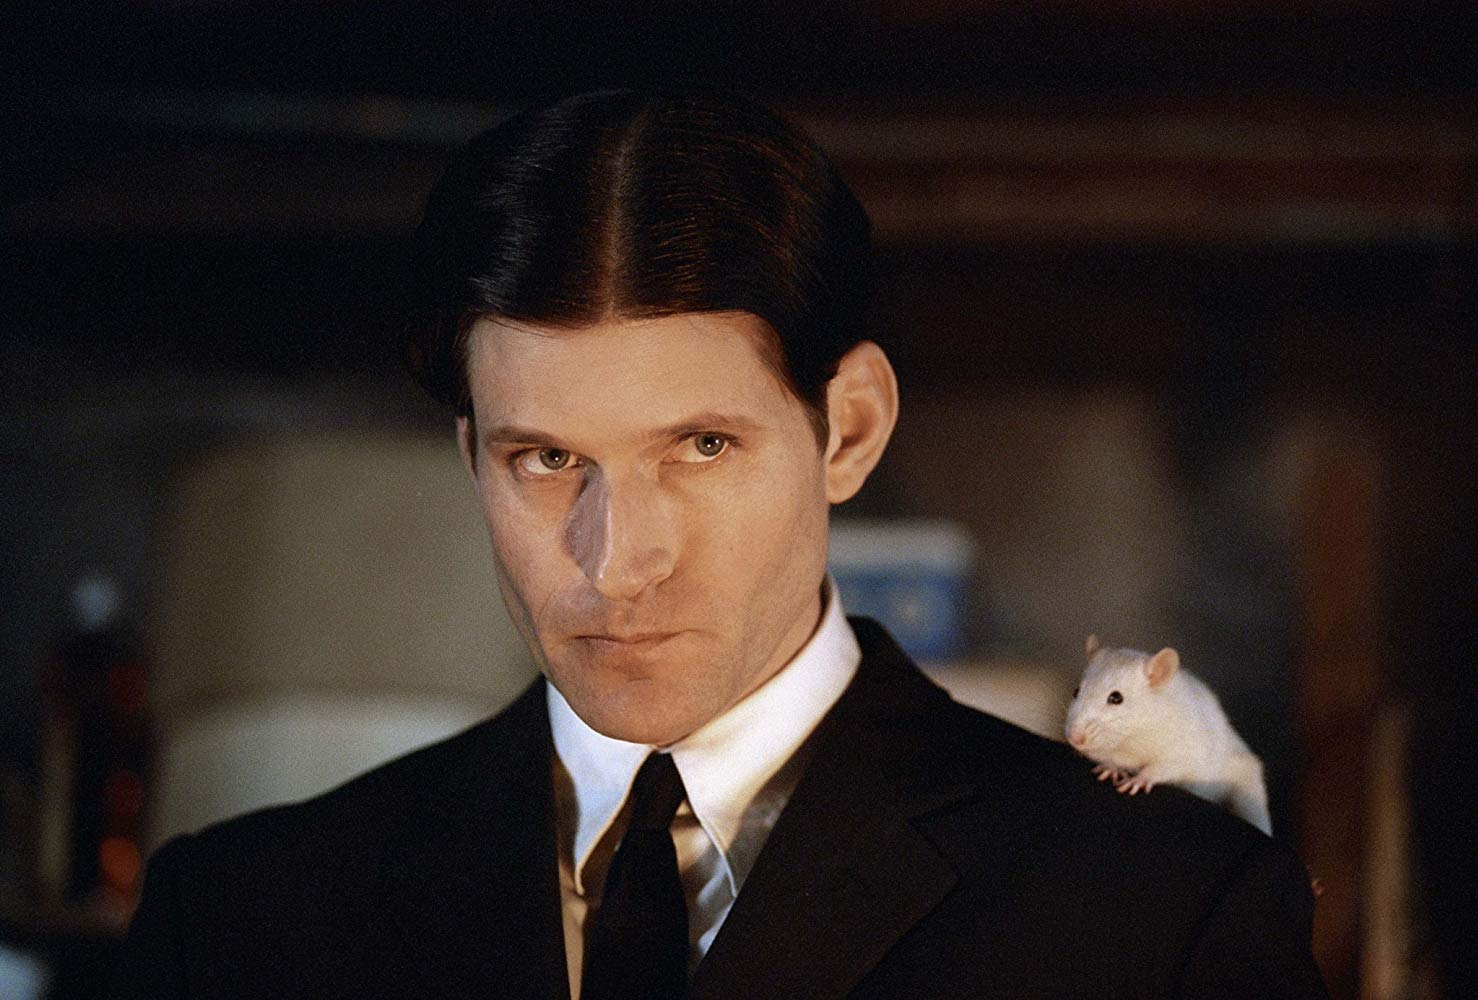 Crispin Glover as Willard along with rat friend on his shoulder in Willard (2003)